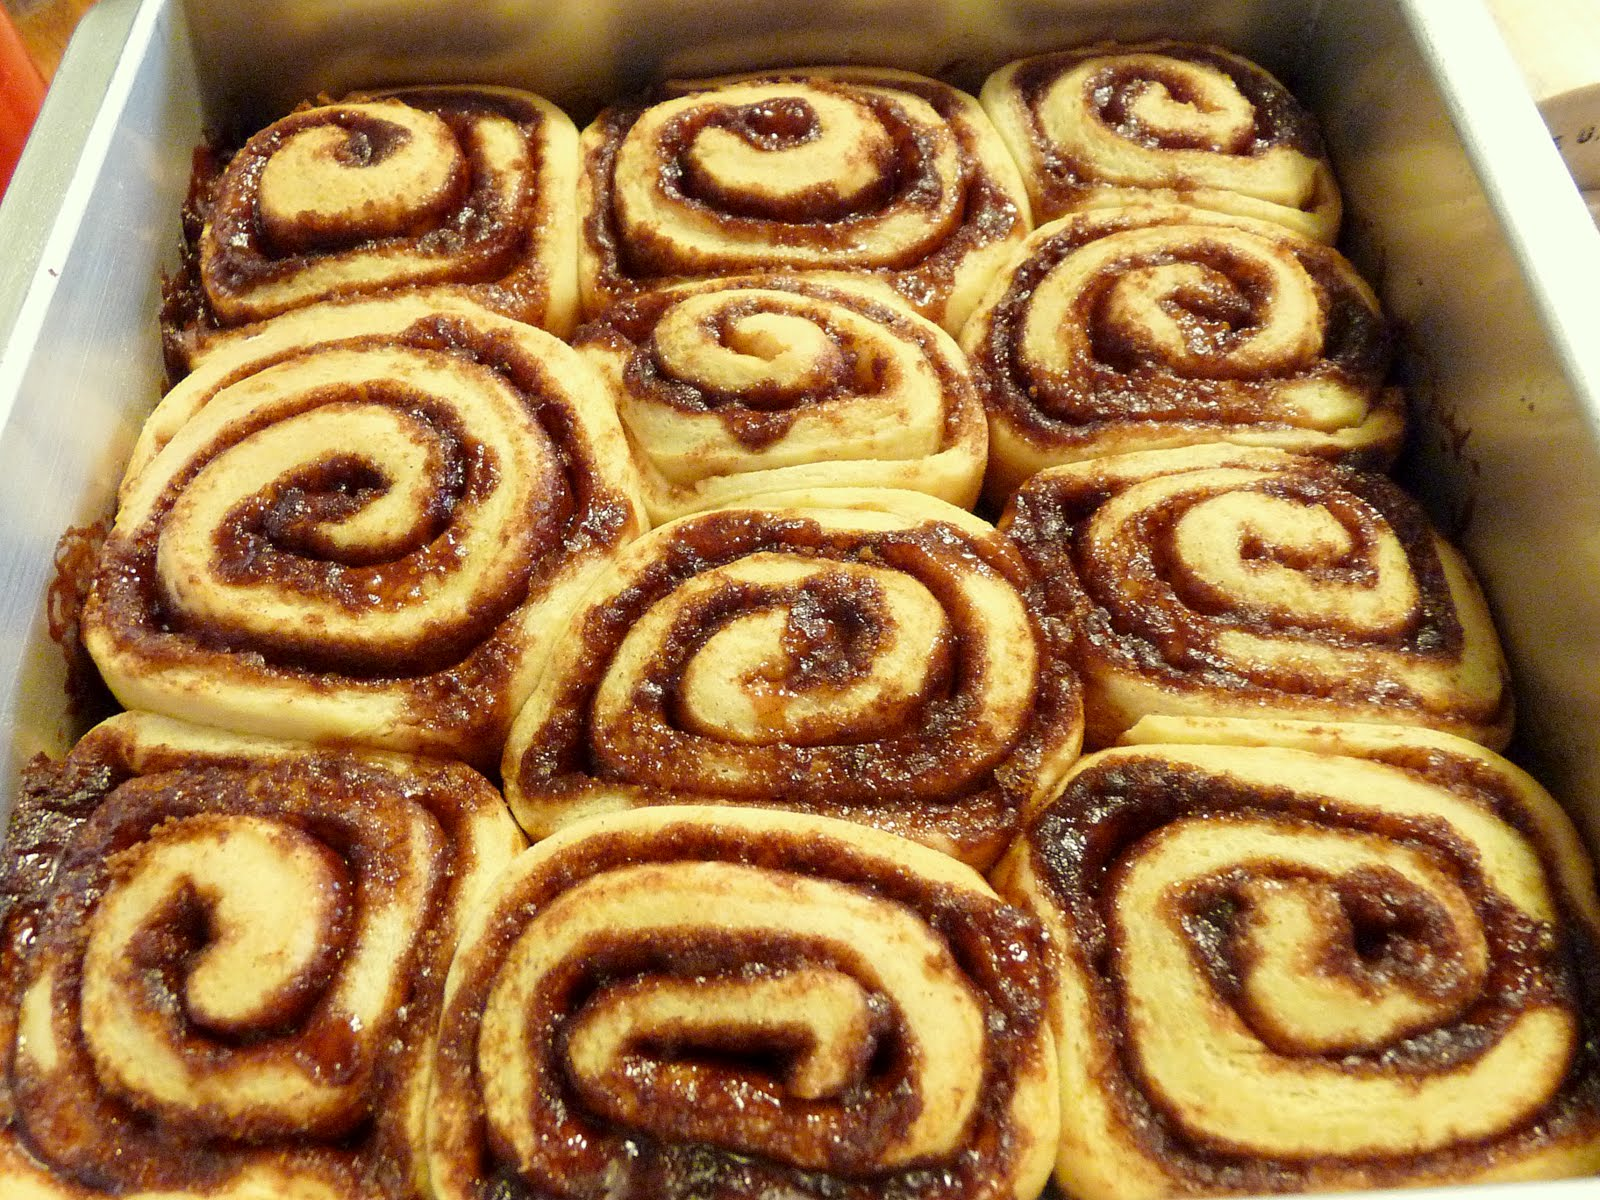 Cinnamon Swirl Buns for a Special Lady | Pomato Revival